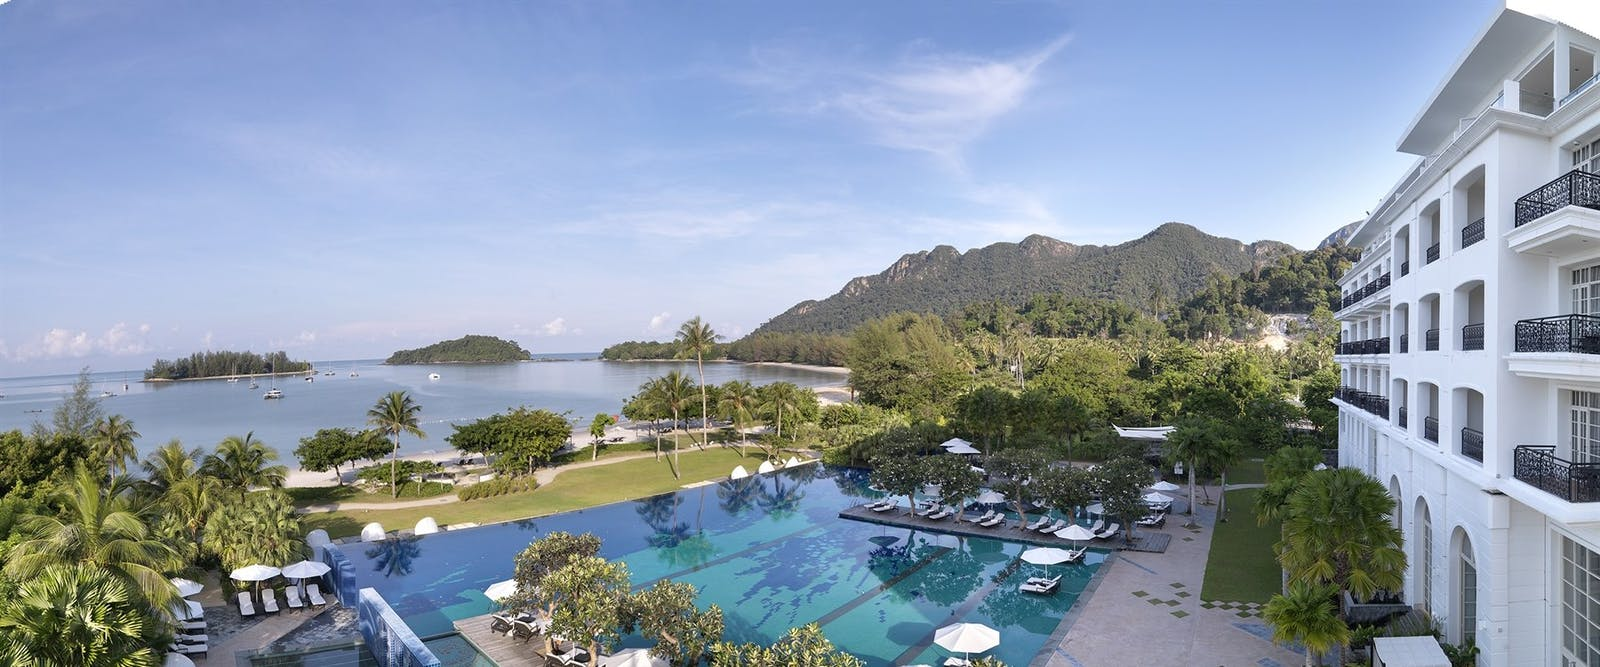 Infinity pool at The Danna Langkawi